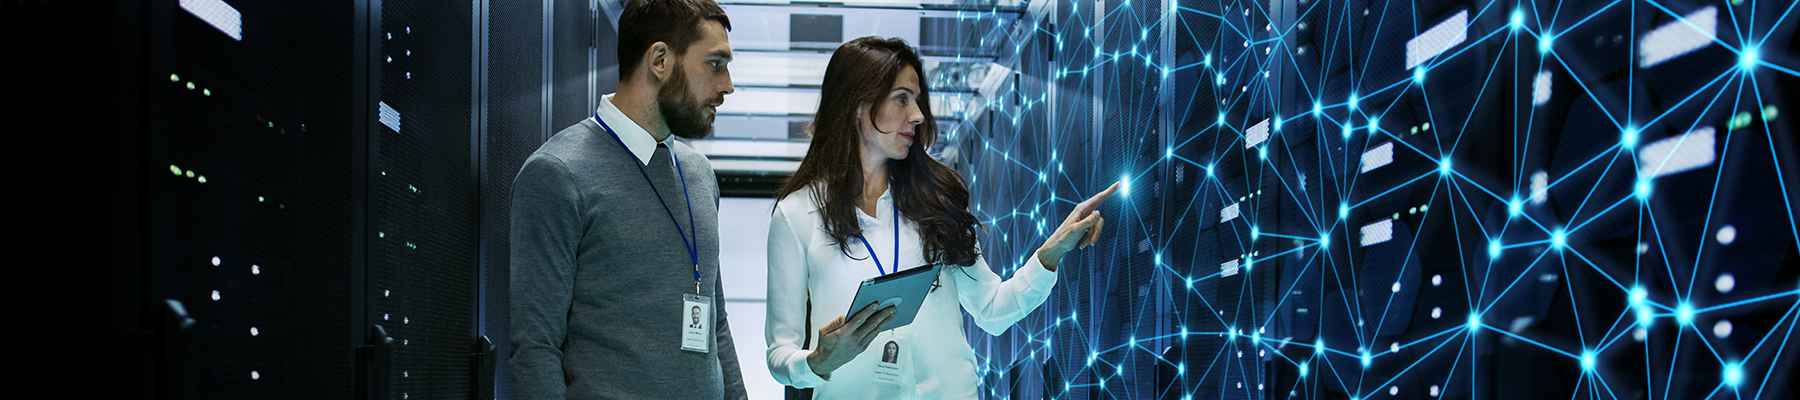 Male and female walking through server room